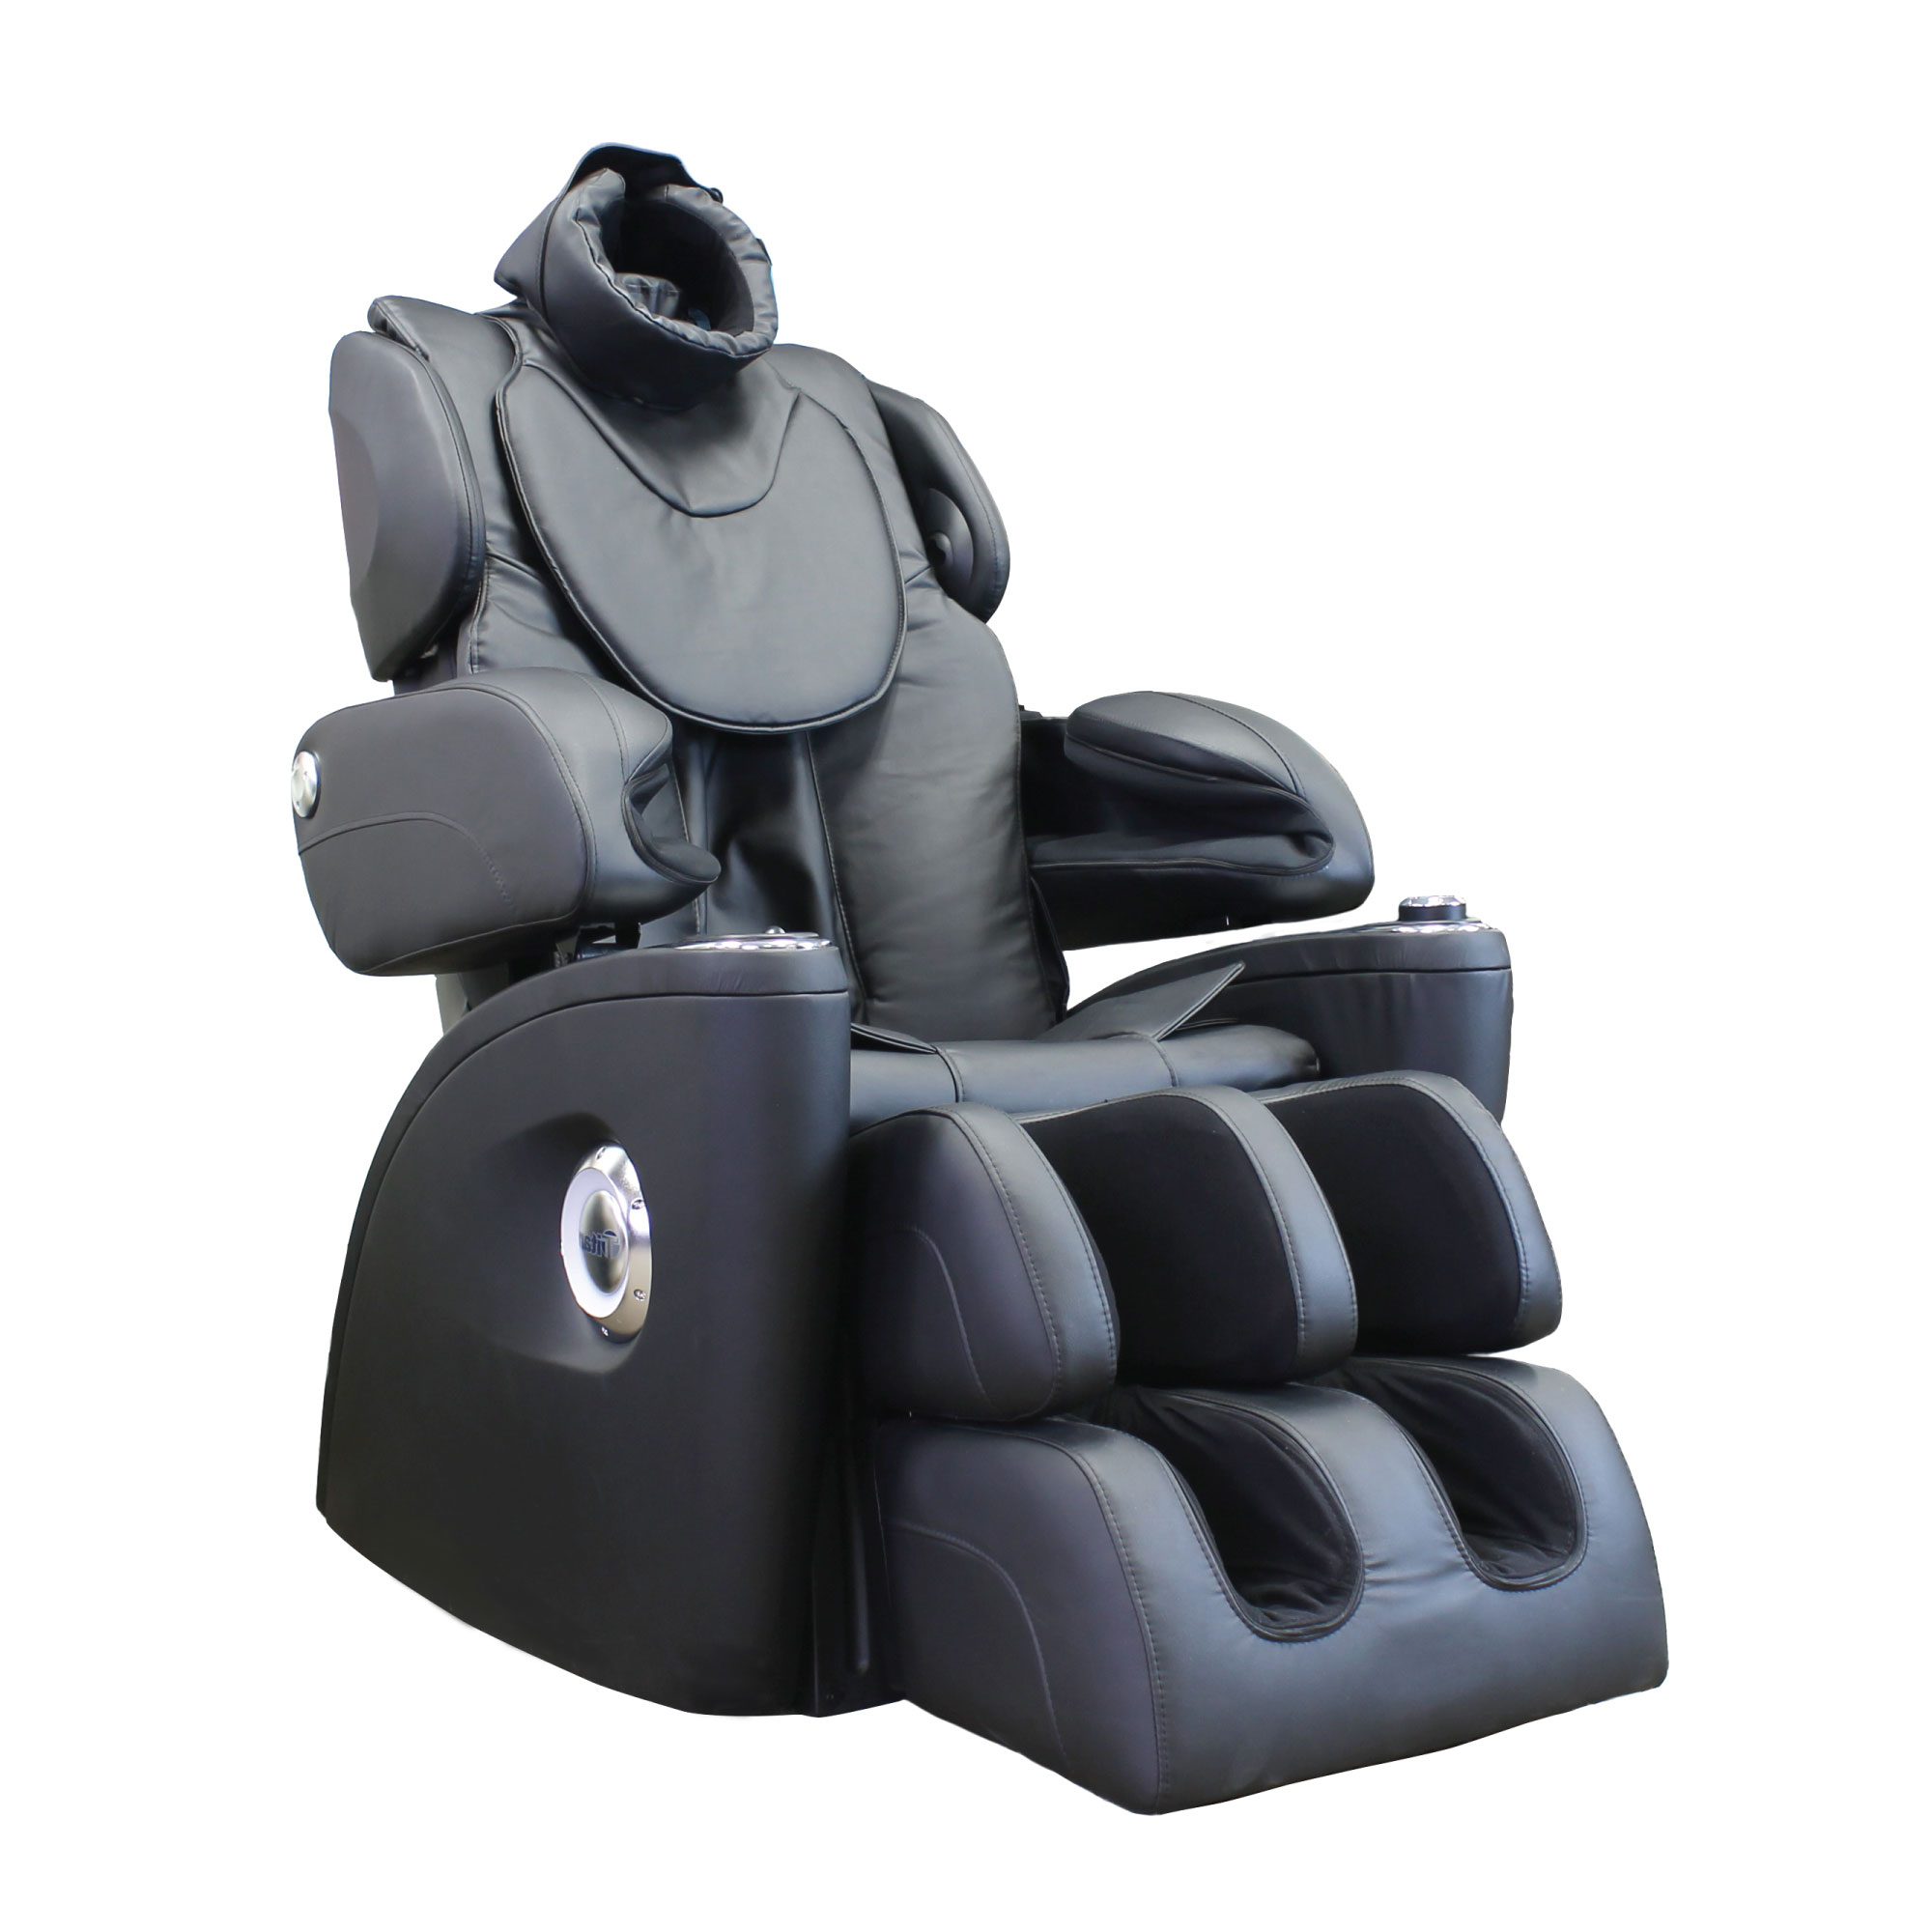 Massage Chair Review – Massage Chairs Reviews 2017